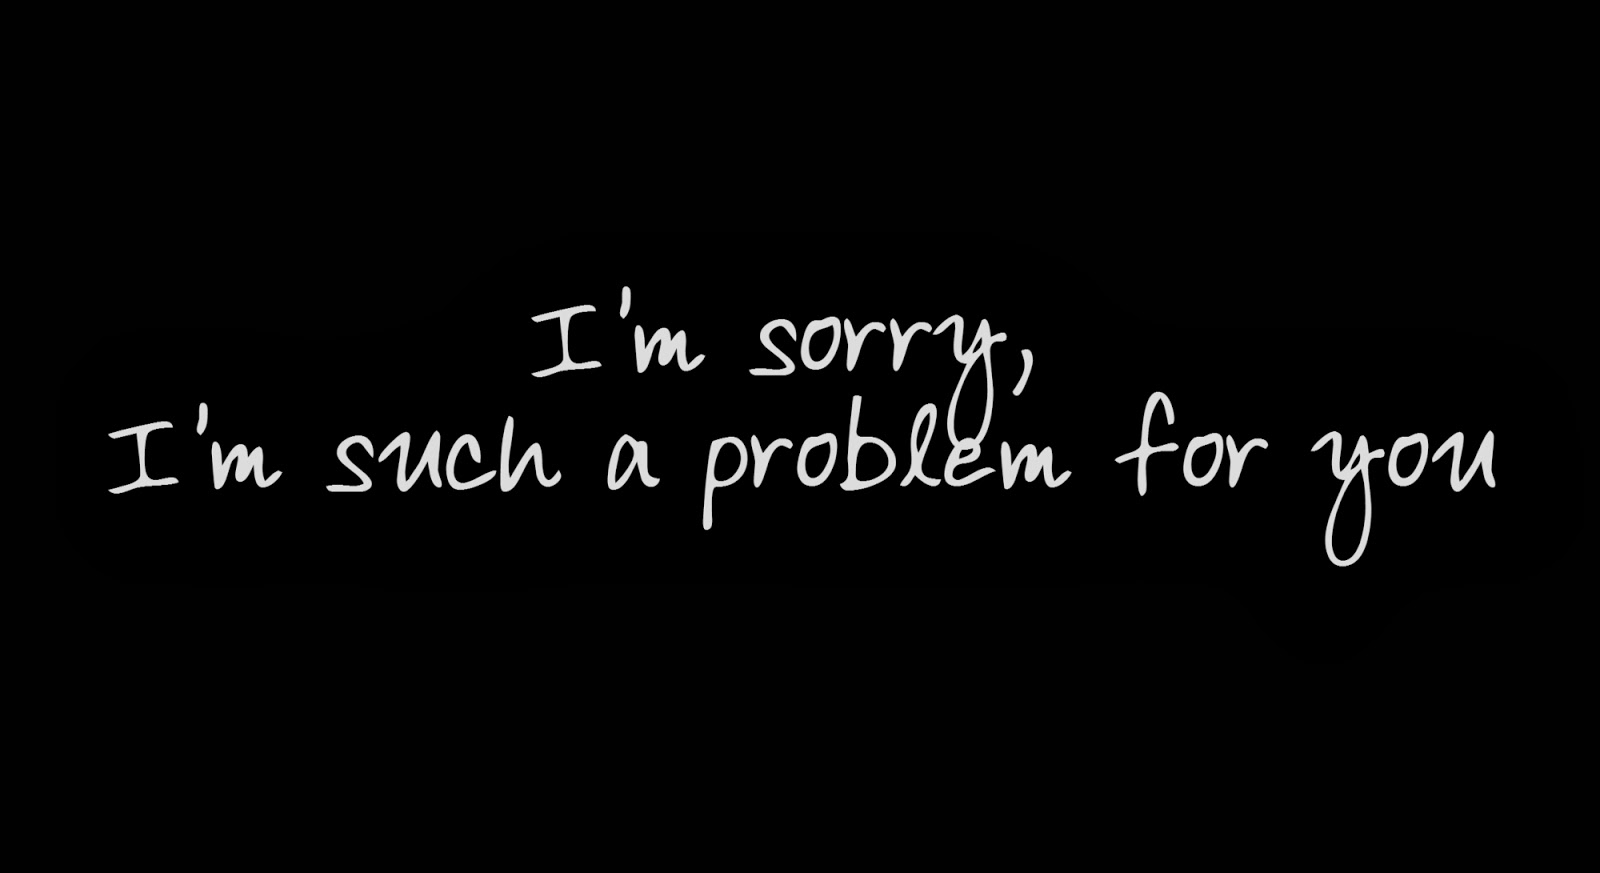 I'm sorry, I'm such a problem for you